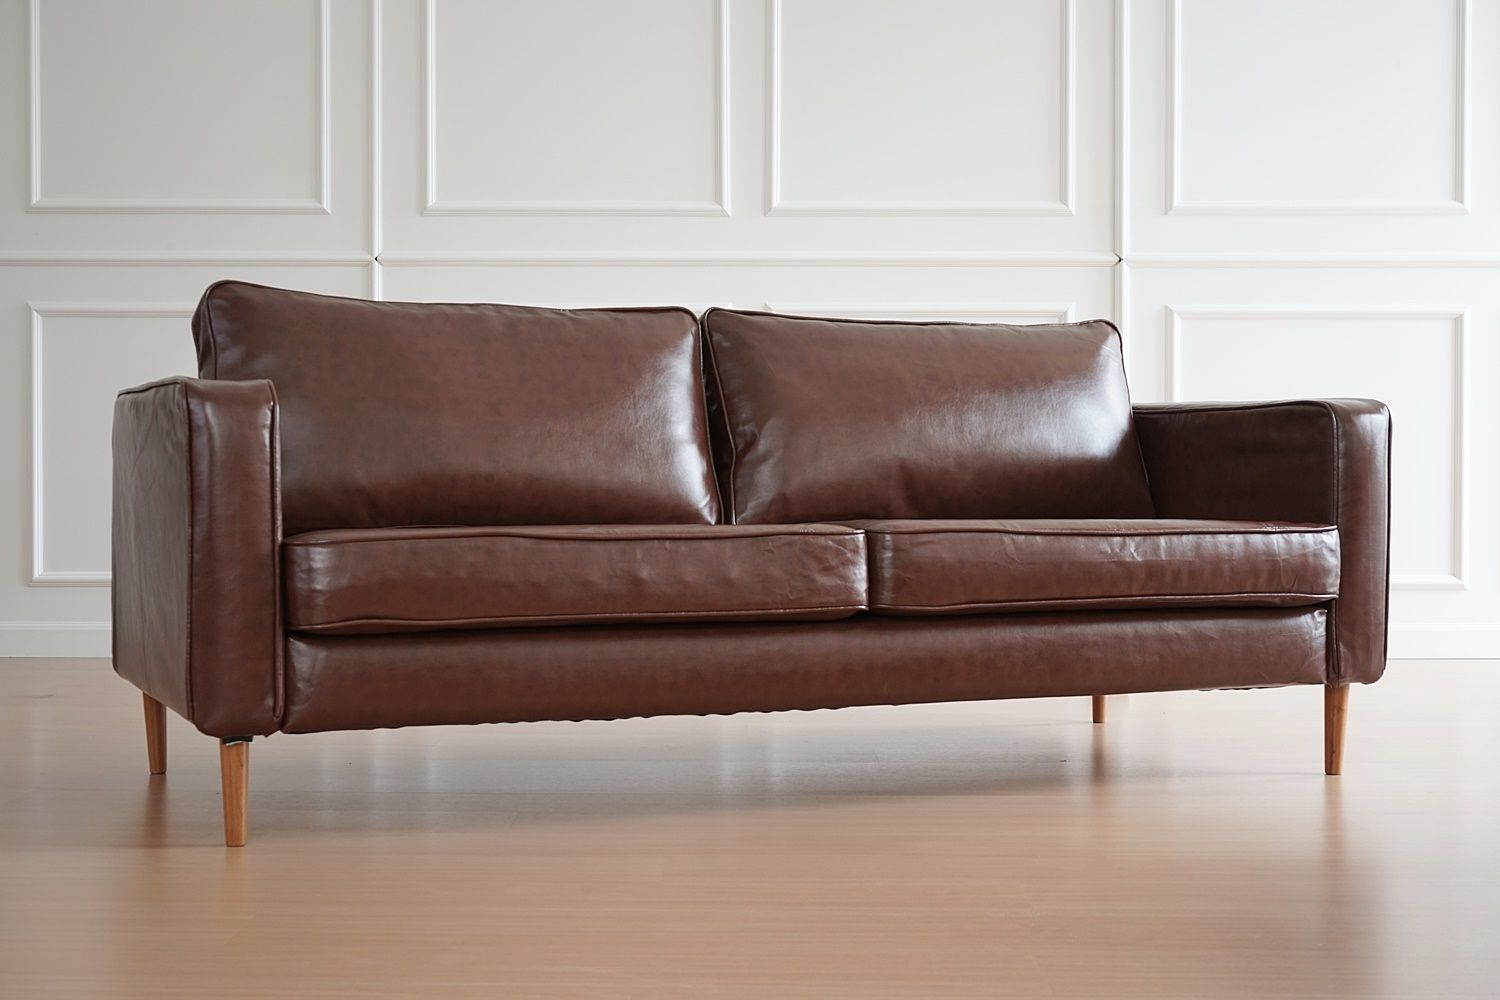 Ikea Karlstad Sofa In Urbanskin Chestnut Brown Leather Slipcovers By Comfort Works Click To Buy Couch Covers In Ikea Karlstad Sofa Karlstad Sofa Sofa Covers